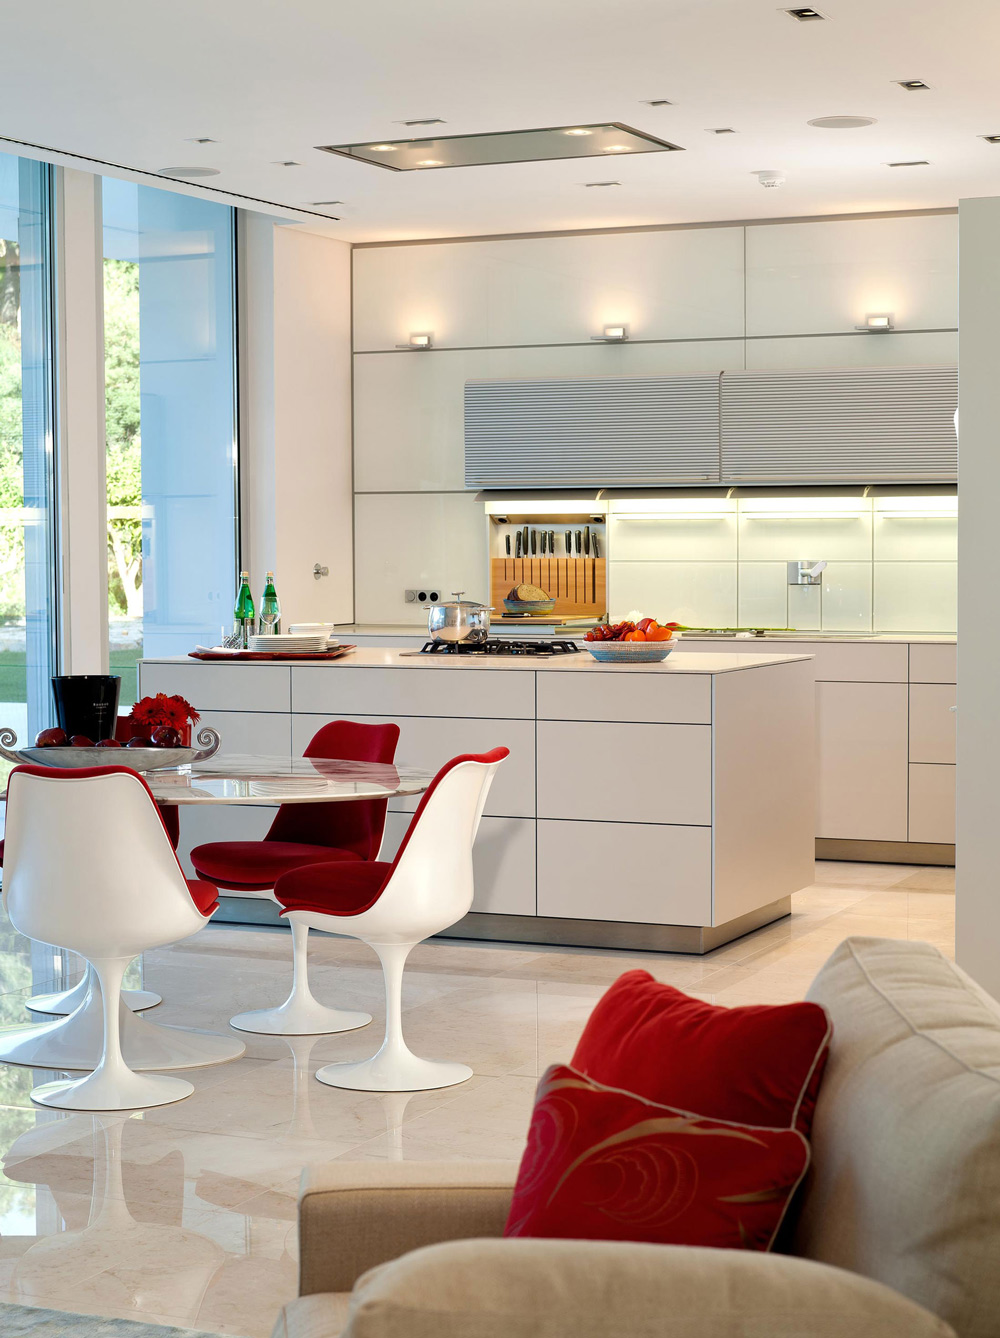 Kitchen, Dining, Family House in Portugal